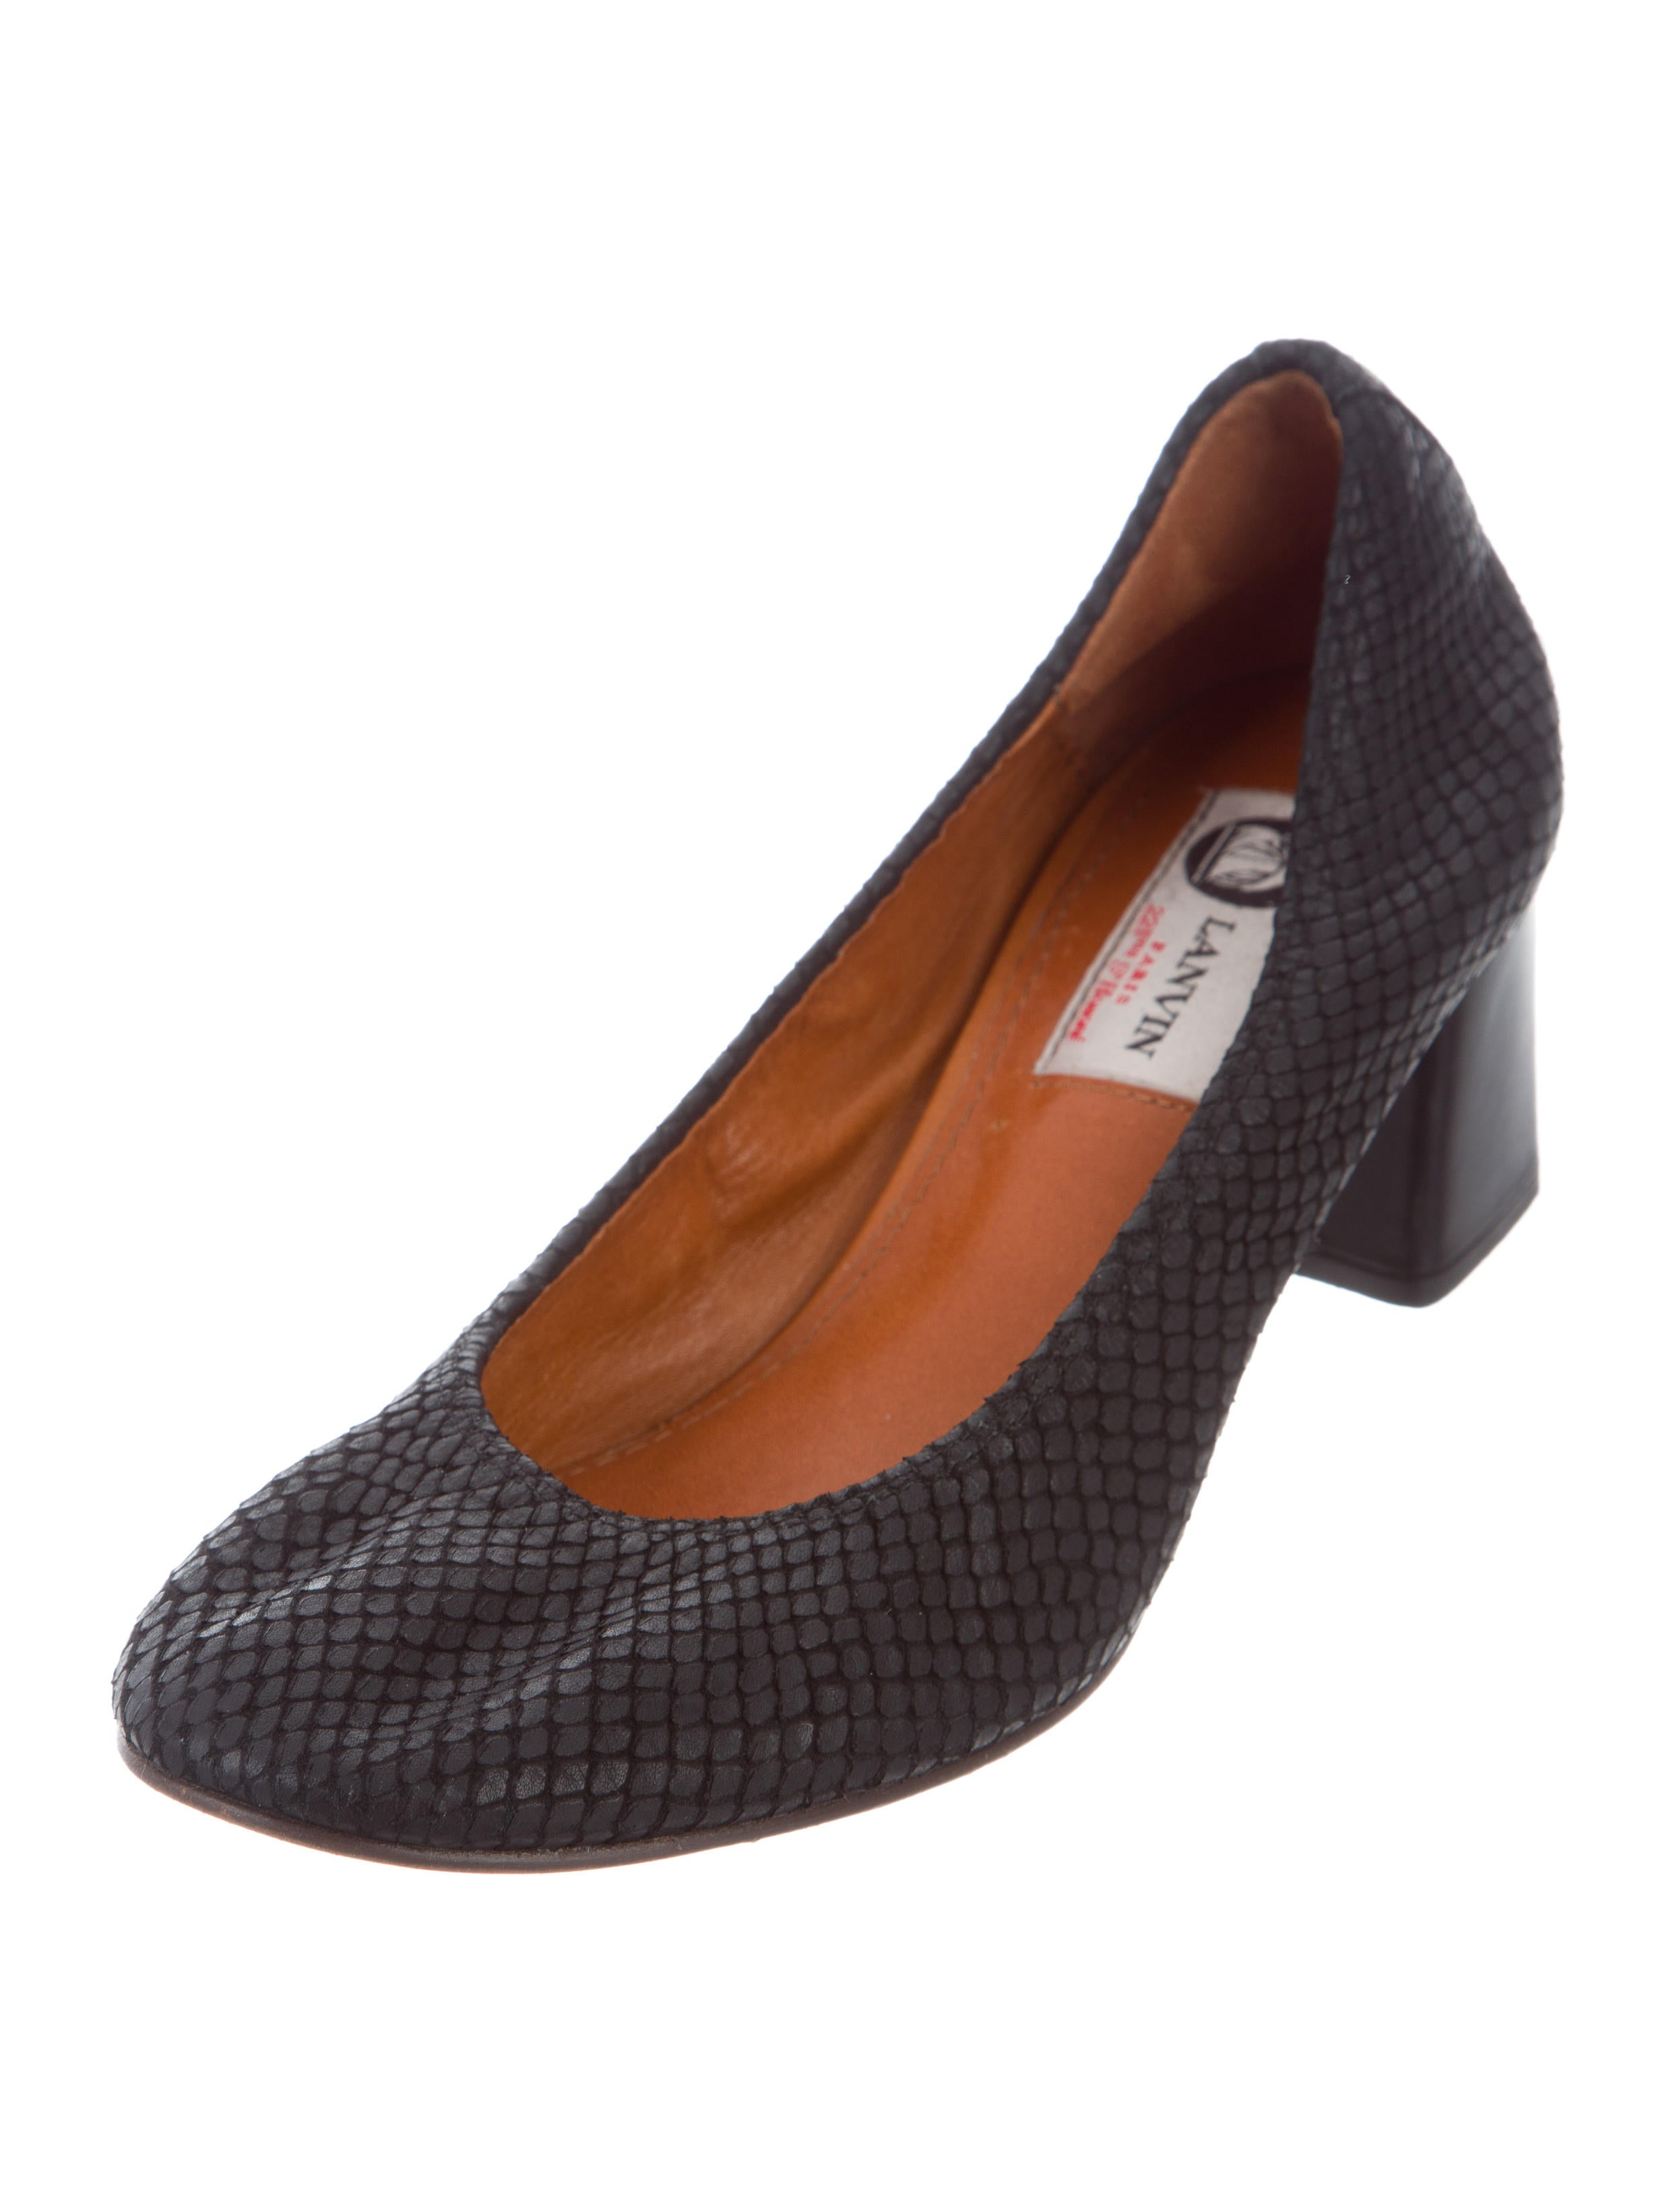 free shipping for sale cheap price Lanvin Embossed Round-Toe Pumps new for sale wTNAtHBGn